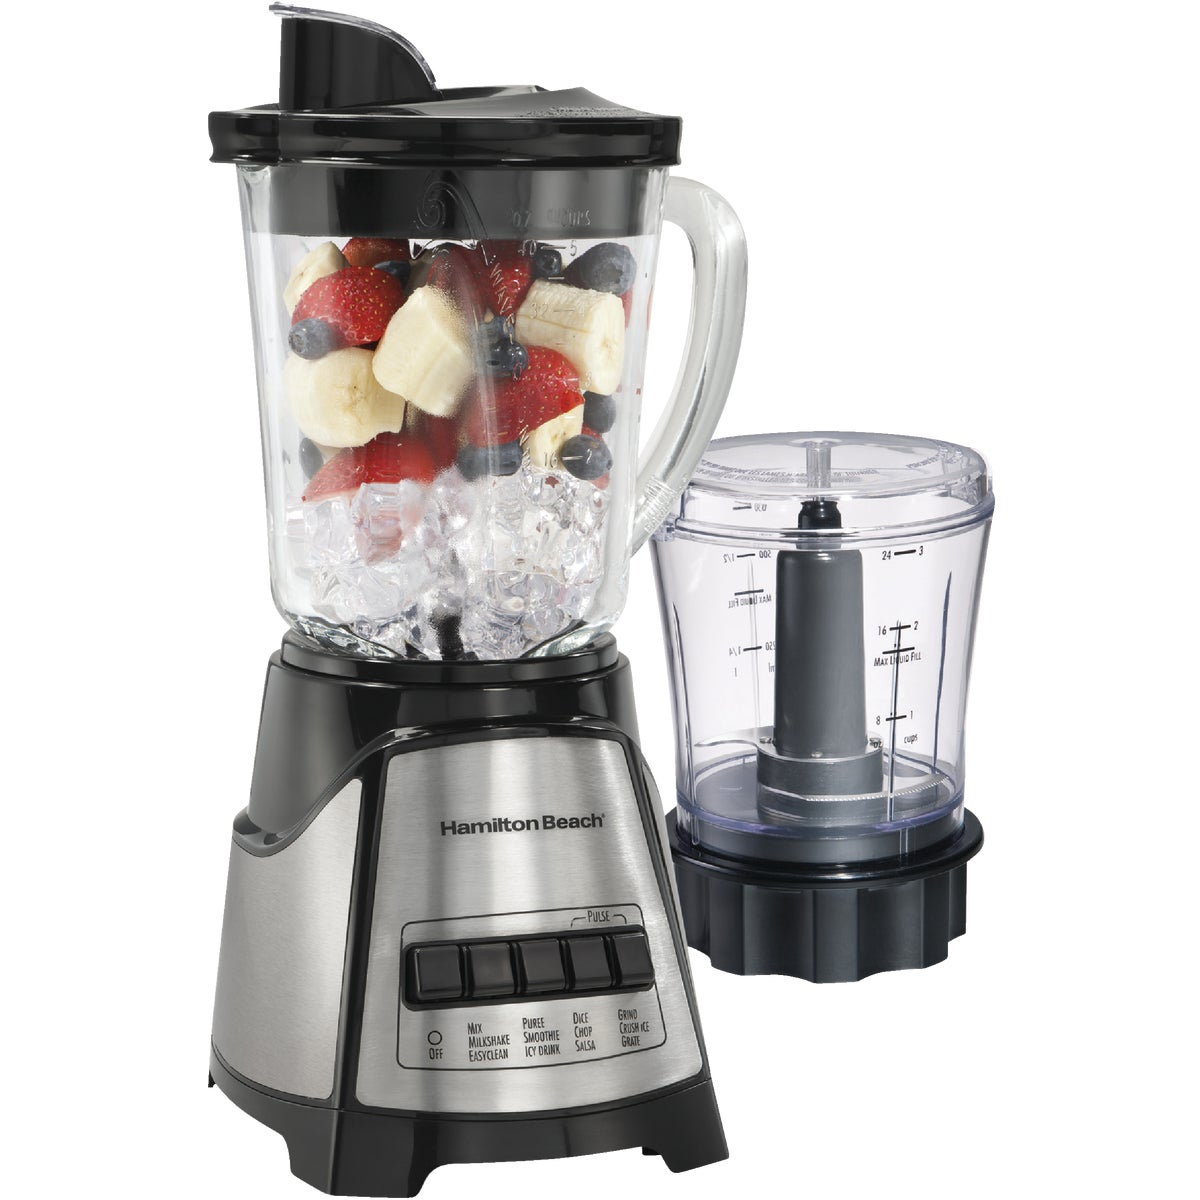 12 FUNCTION BLENDER GL - 58149 by Hamilton Beach Brand